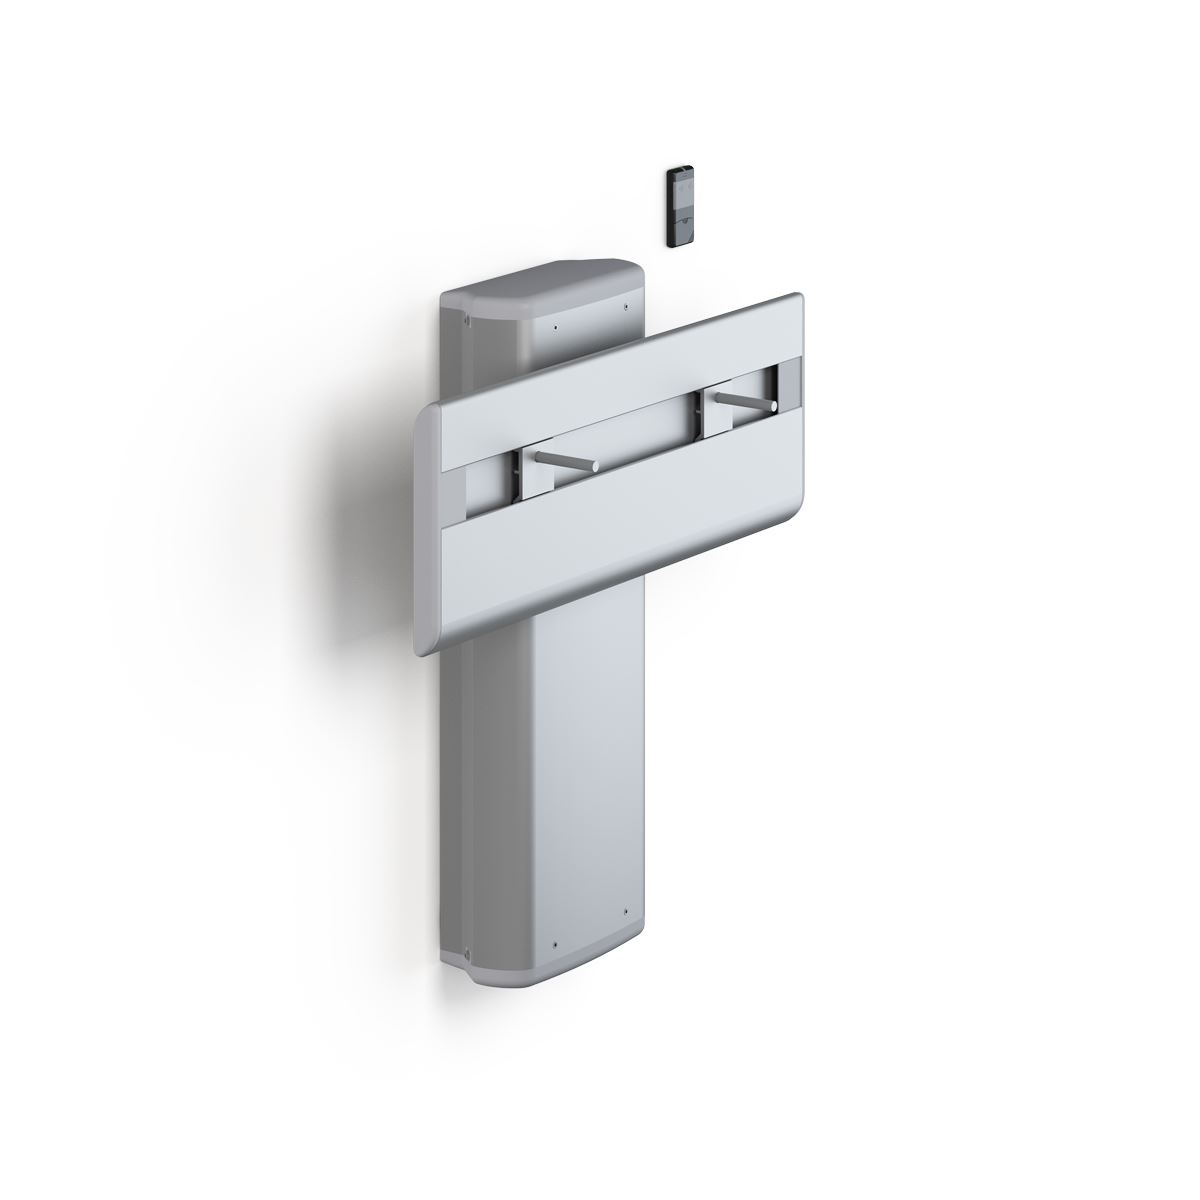 PLUS wash basin bracket with cordless remote control, electrically height adjustable